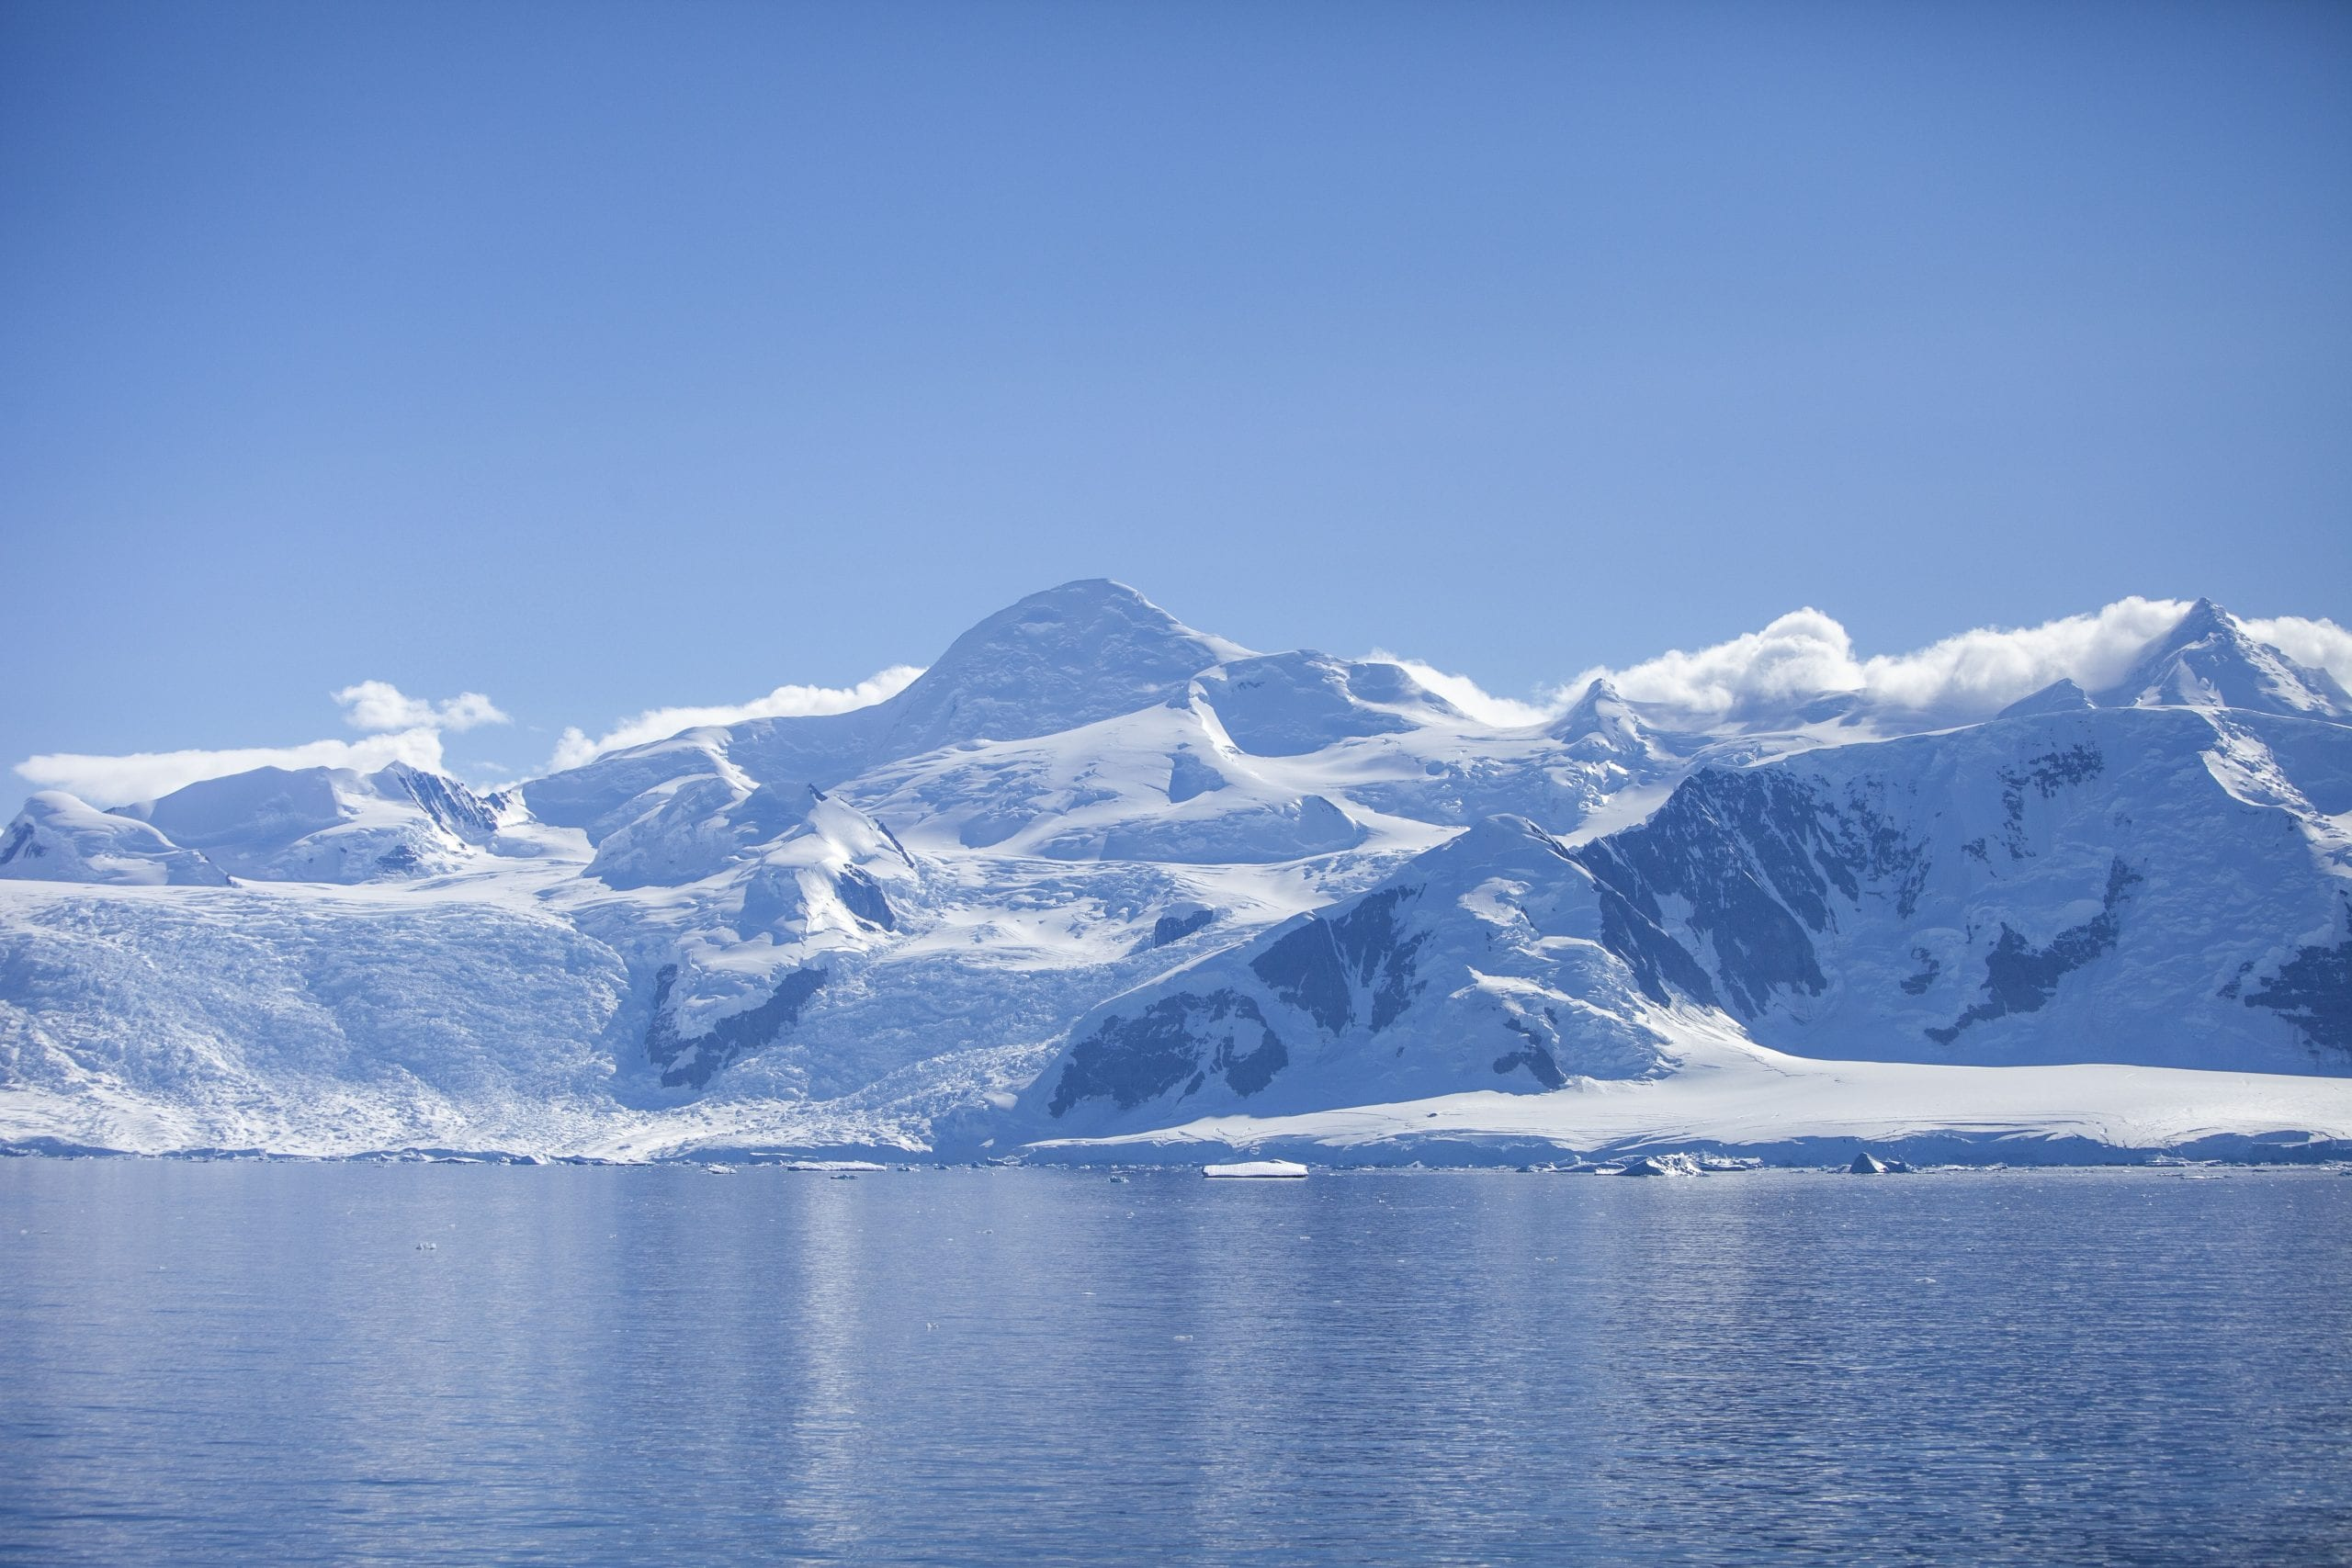 Antarctic Ice Sheet Loss Expected to Affect Future Climate Change